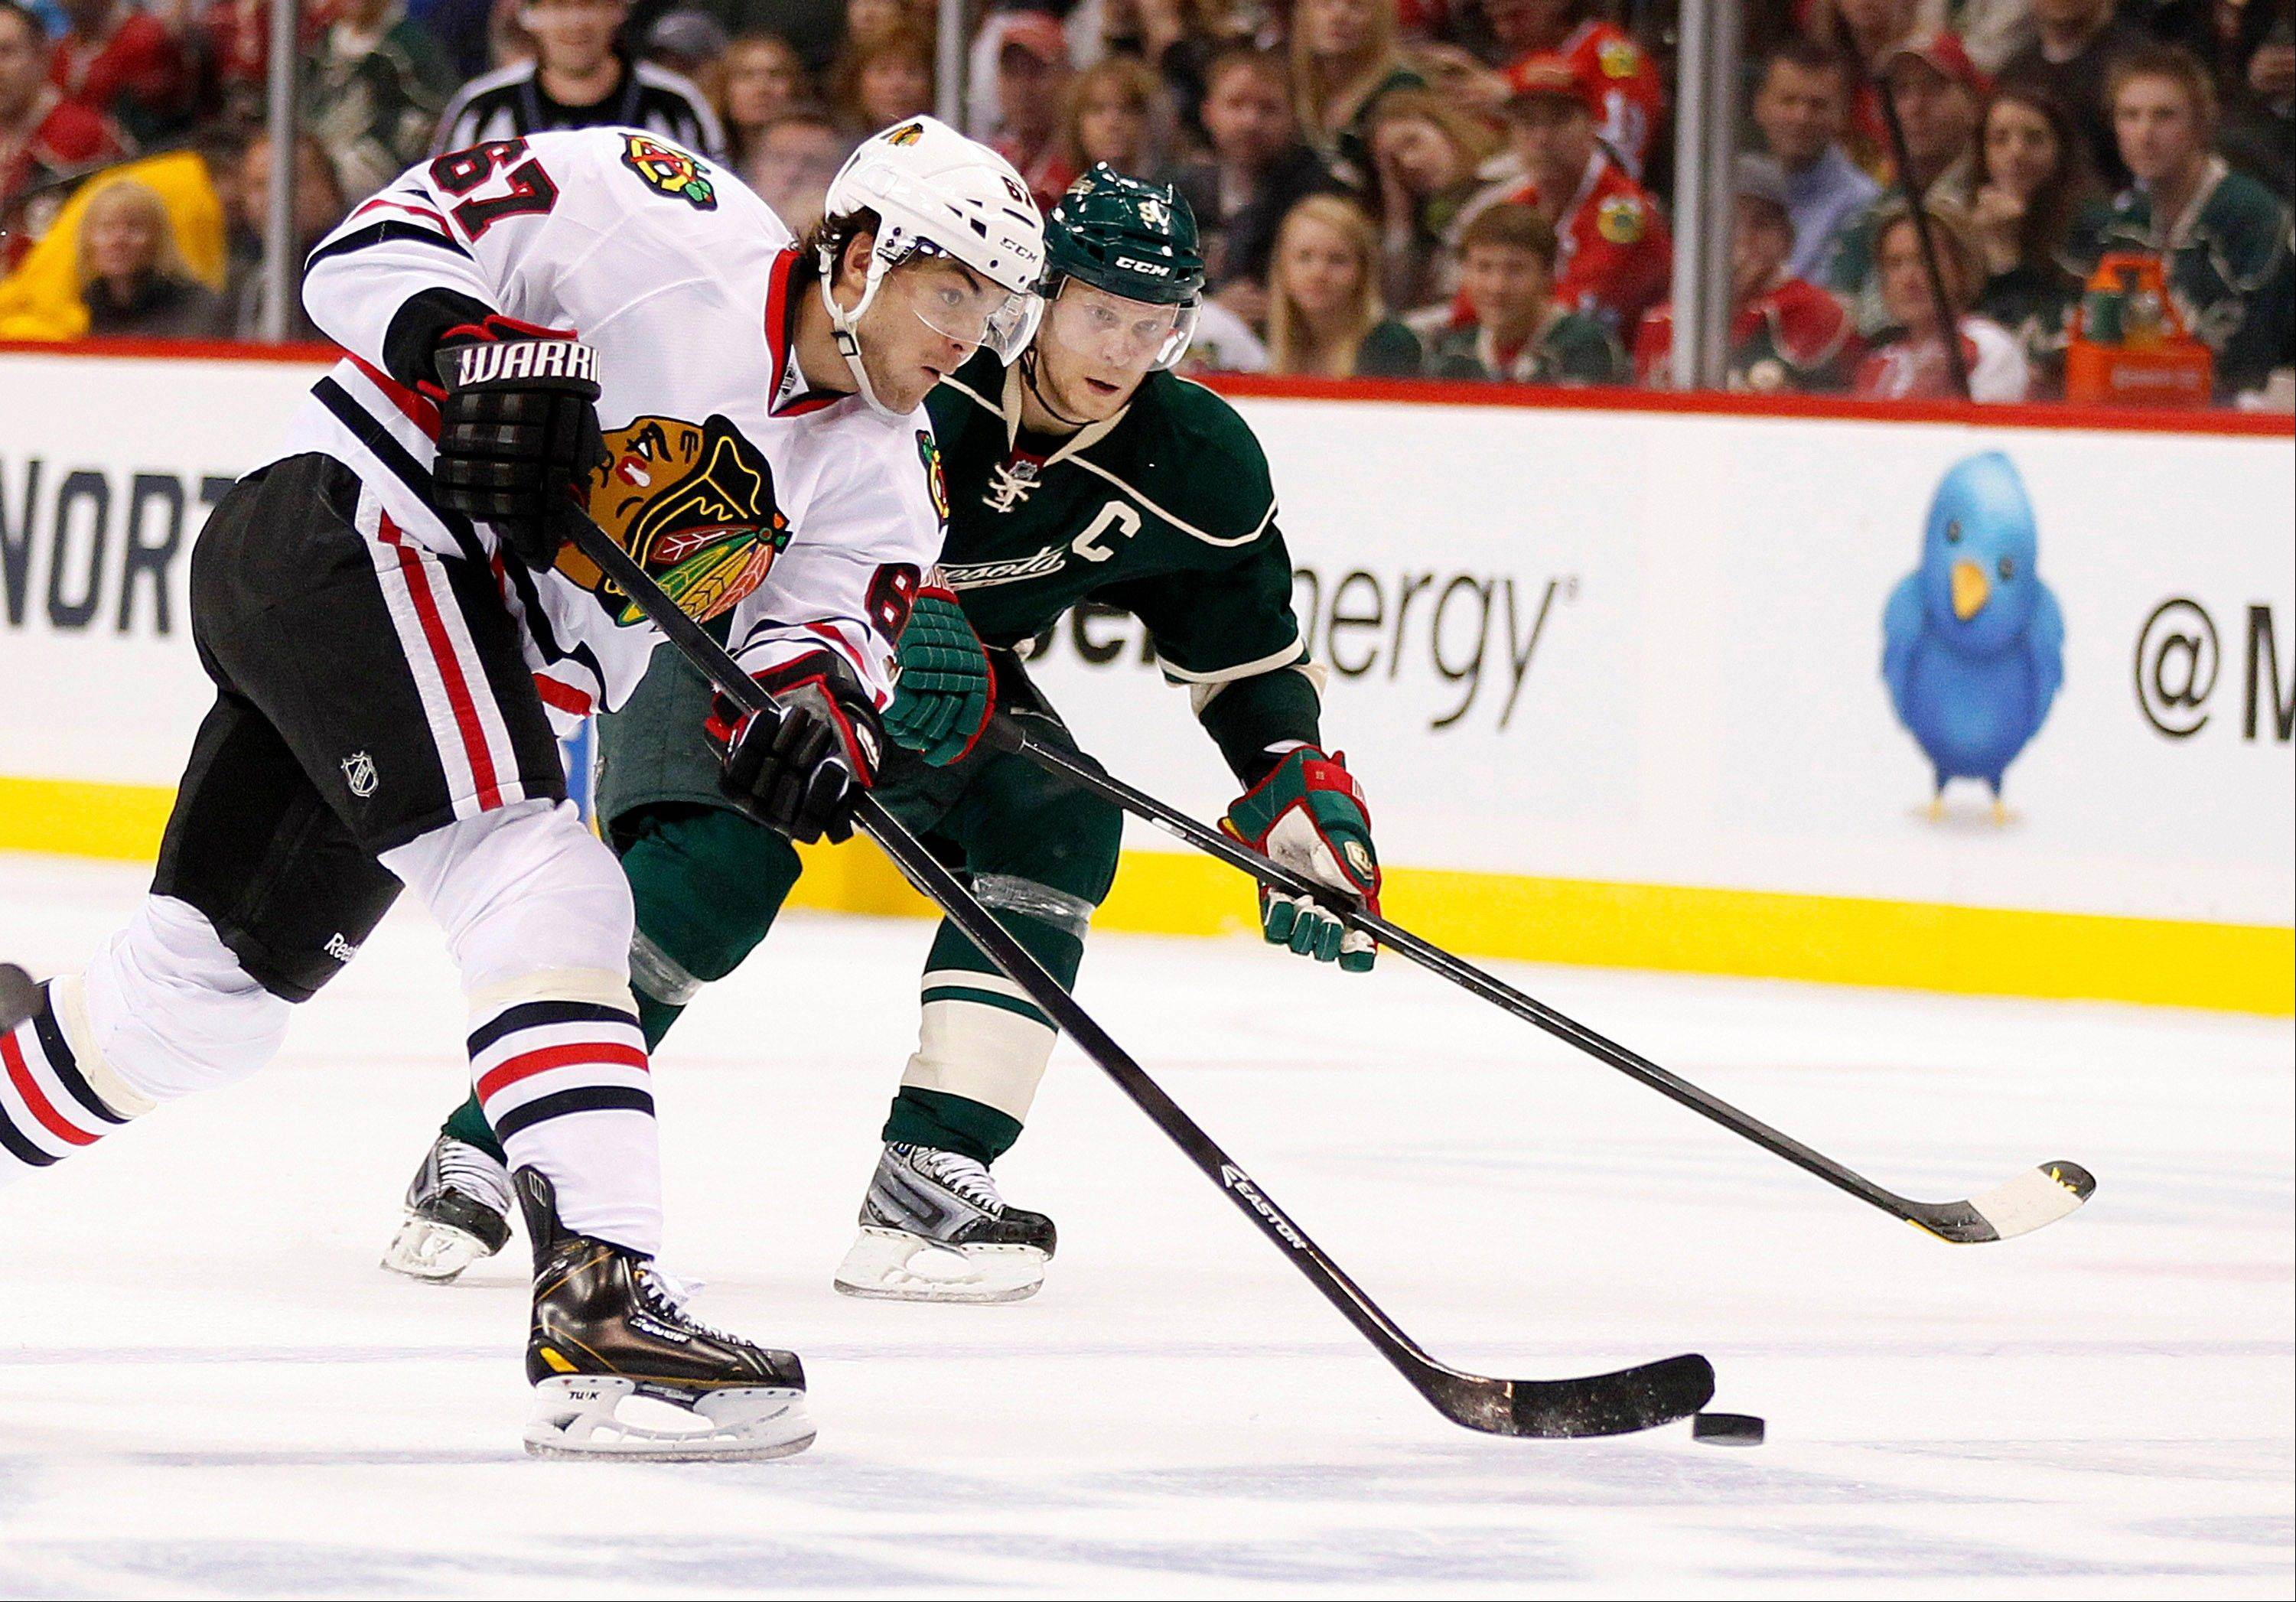 Chicago Blackhawks' Michael Frolik (shoots against Minnesota Wild's Mikko Koivu in the second period of Game 3 of an NHL hockey Stanley Cup playoff series Sunday, May 5, 2013 in St. Paul, Minn.